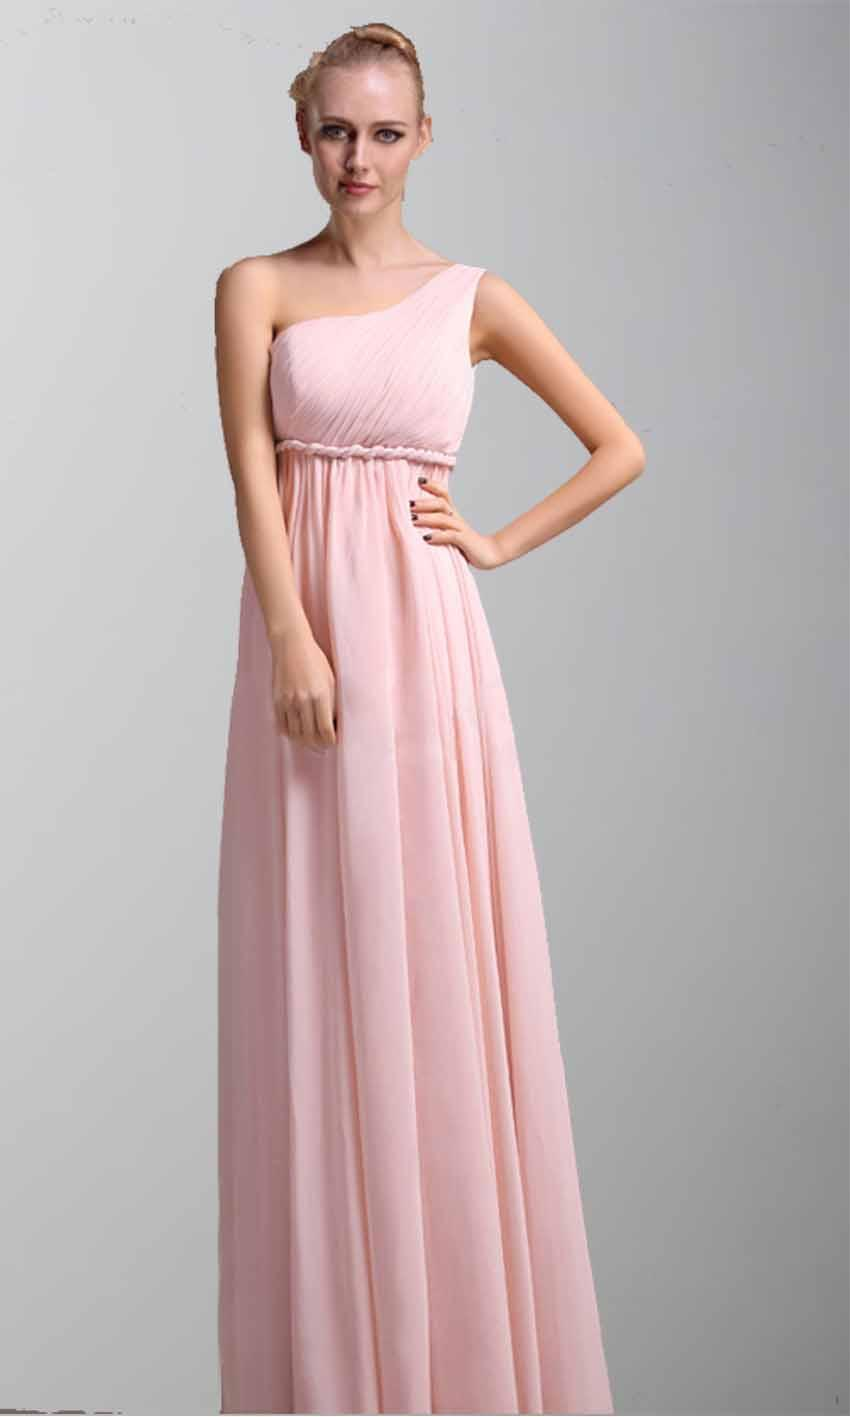 One shoulder braided belt long bridesmaid dress pregnant ksp042 one shoulder braided belt long bridesmaid dress pregnant ksp042 ksp042 8500 cheap prom dresses uk bridesmaid dresses 2014 prom evening dresses ombrellifo Image collections